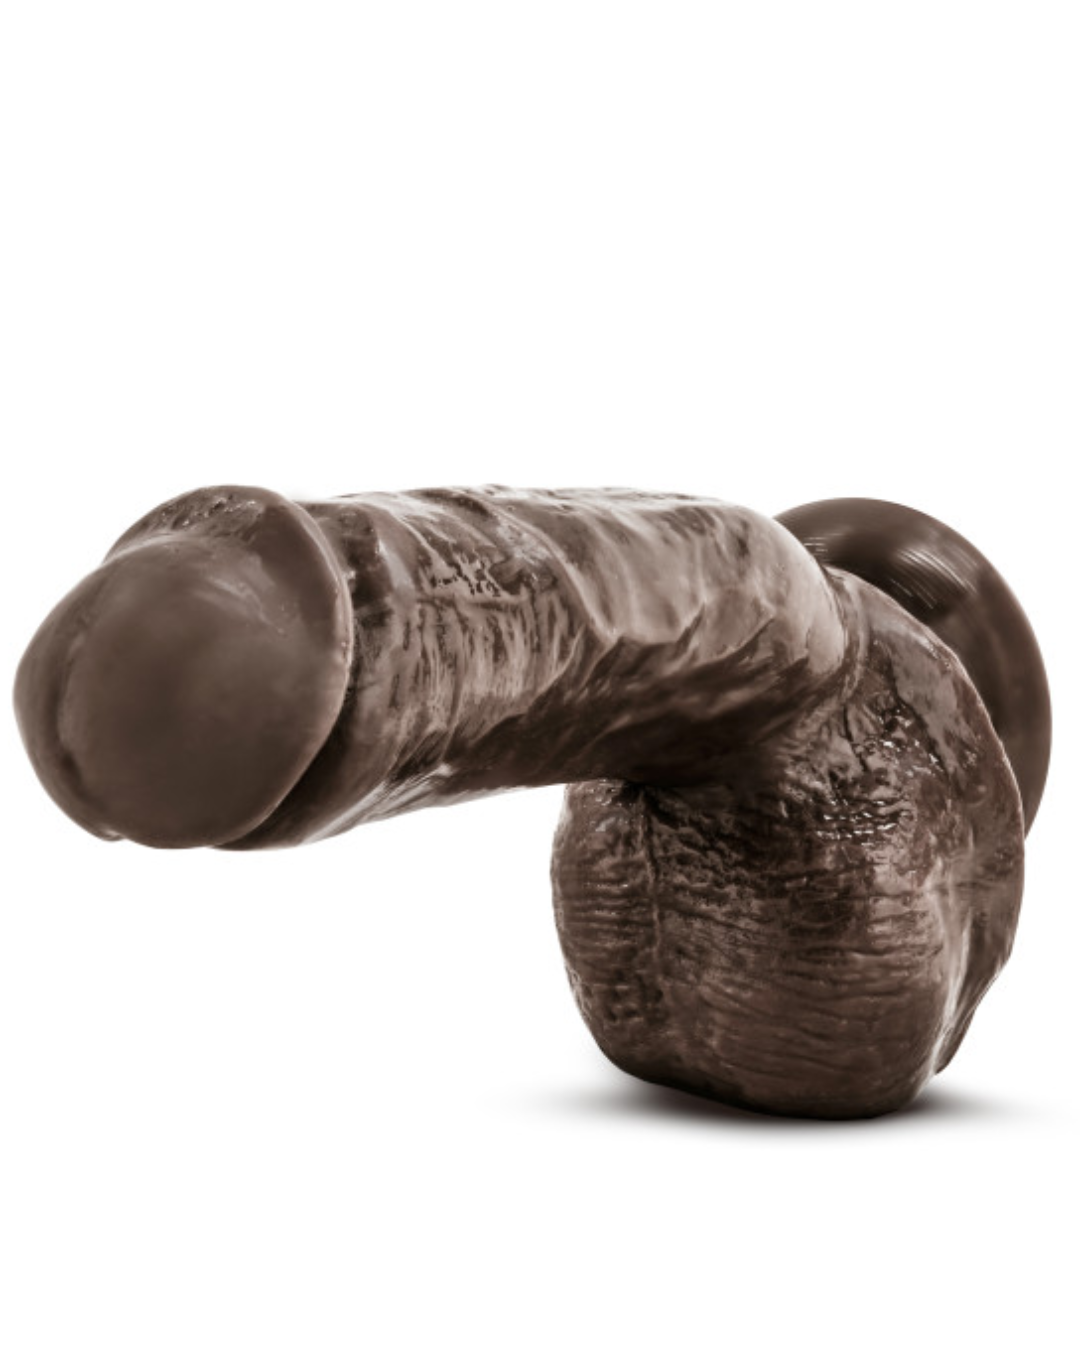 X5 Hard On Realistic 8.75 Inch Suction Cup Dildo - Chocolate horizontal with close up of the tip